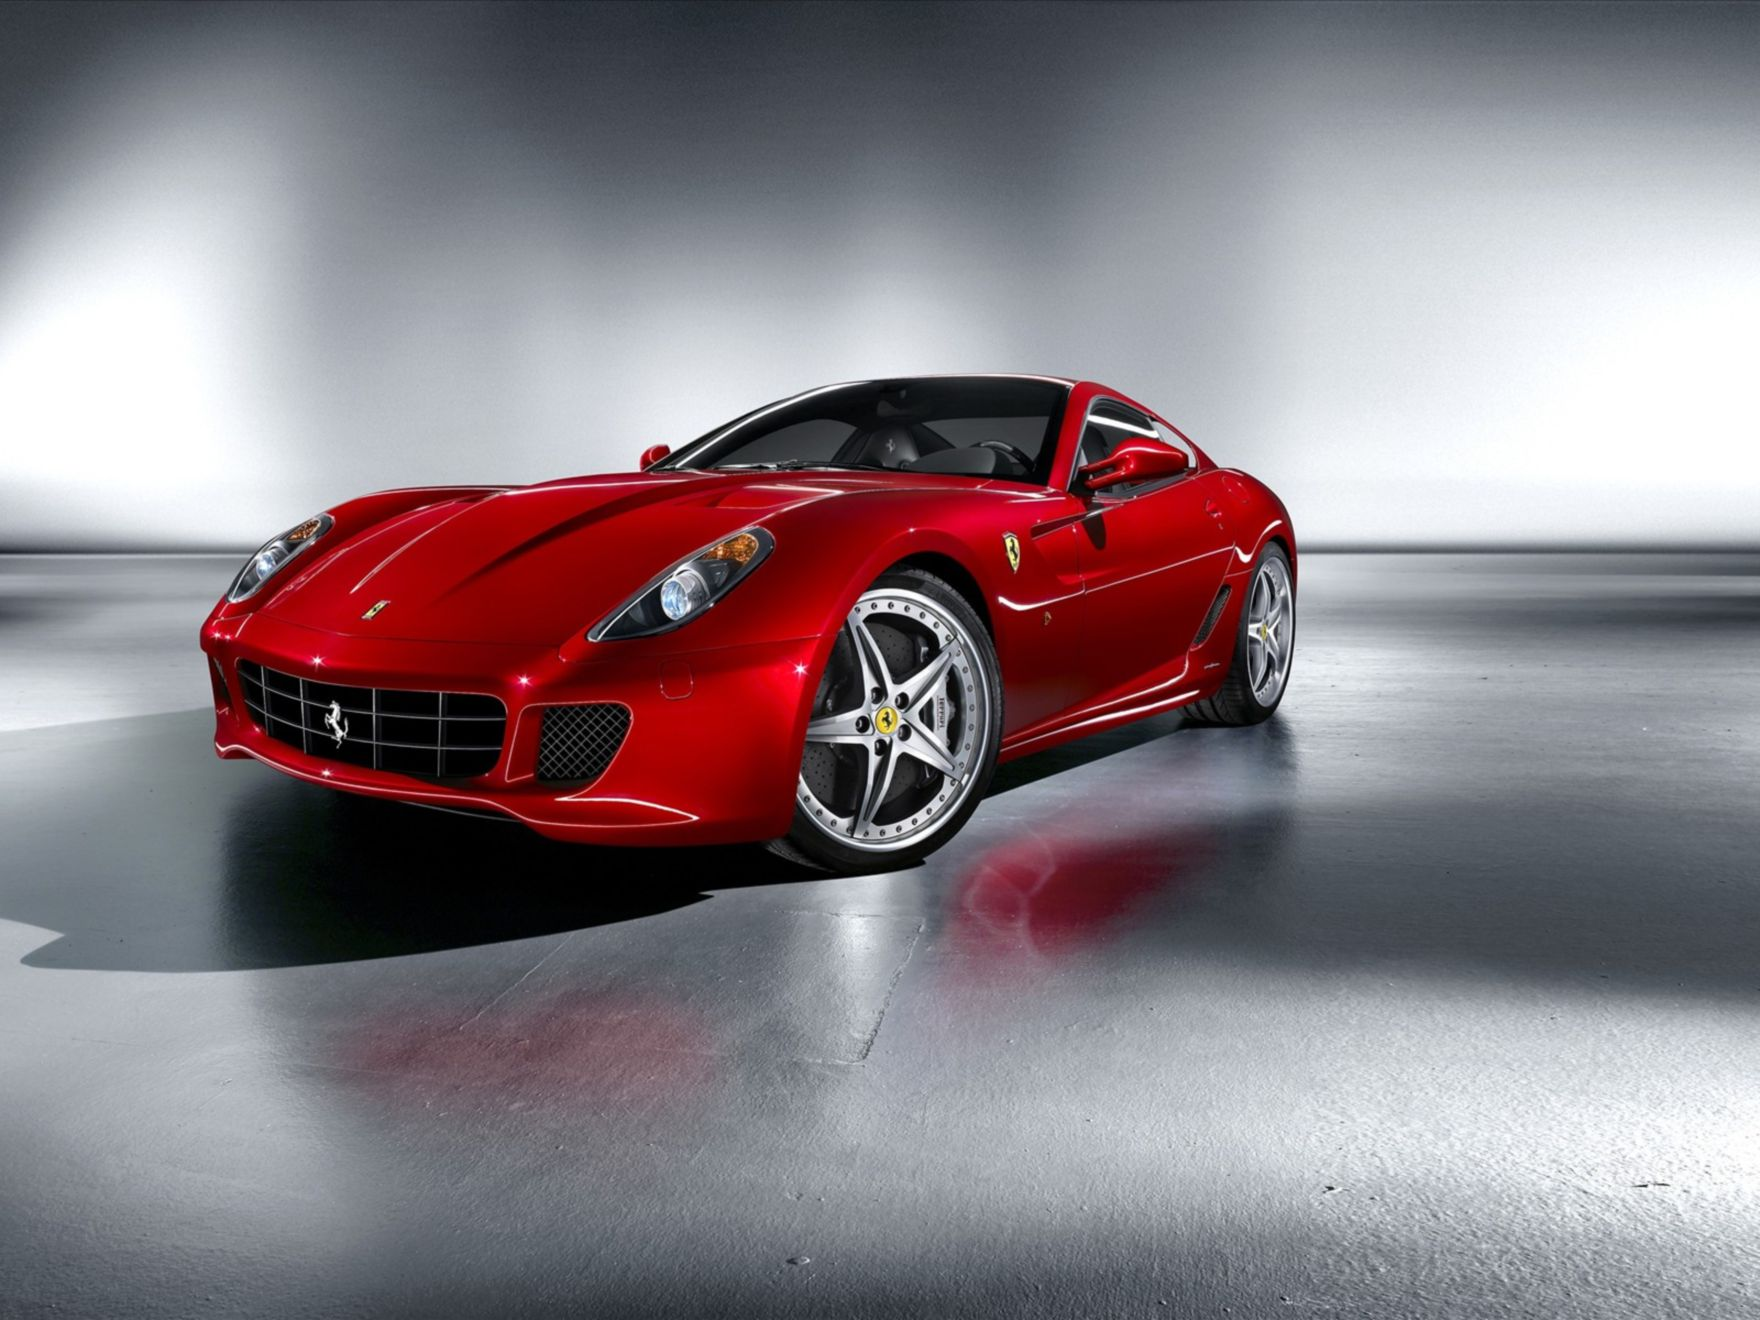 Download free HD Ferrari Red Car Normal Wallpaper, image